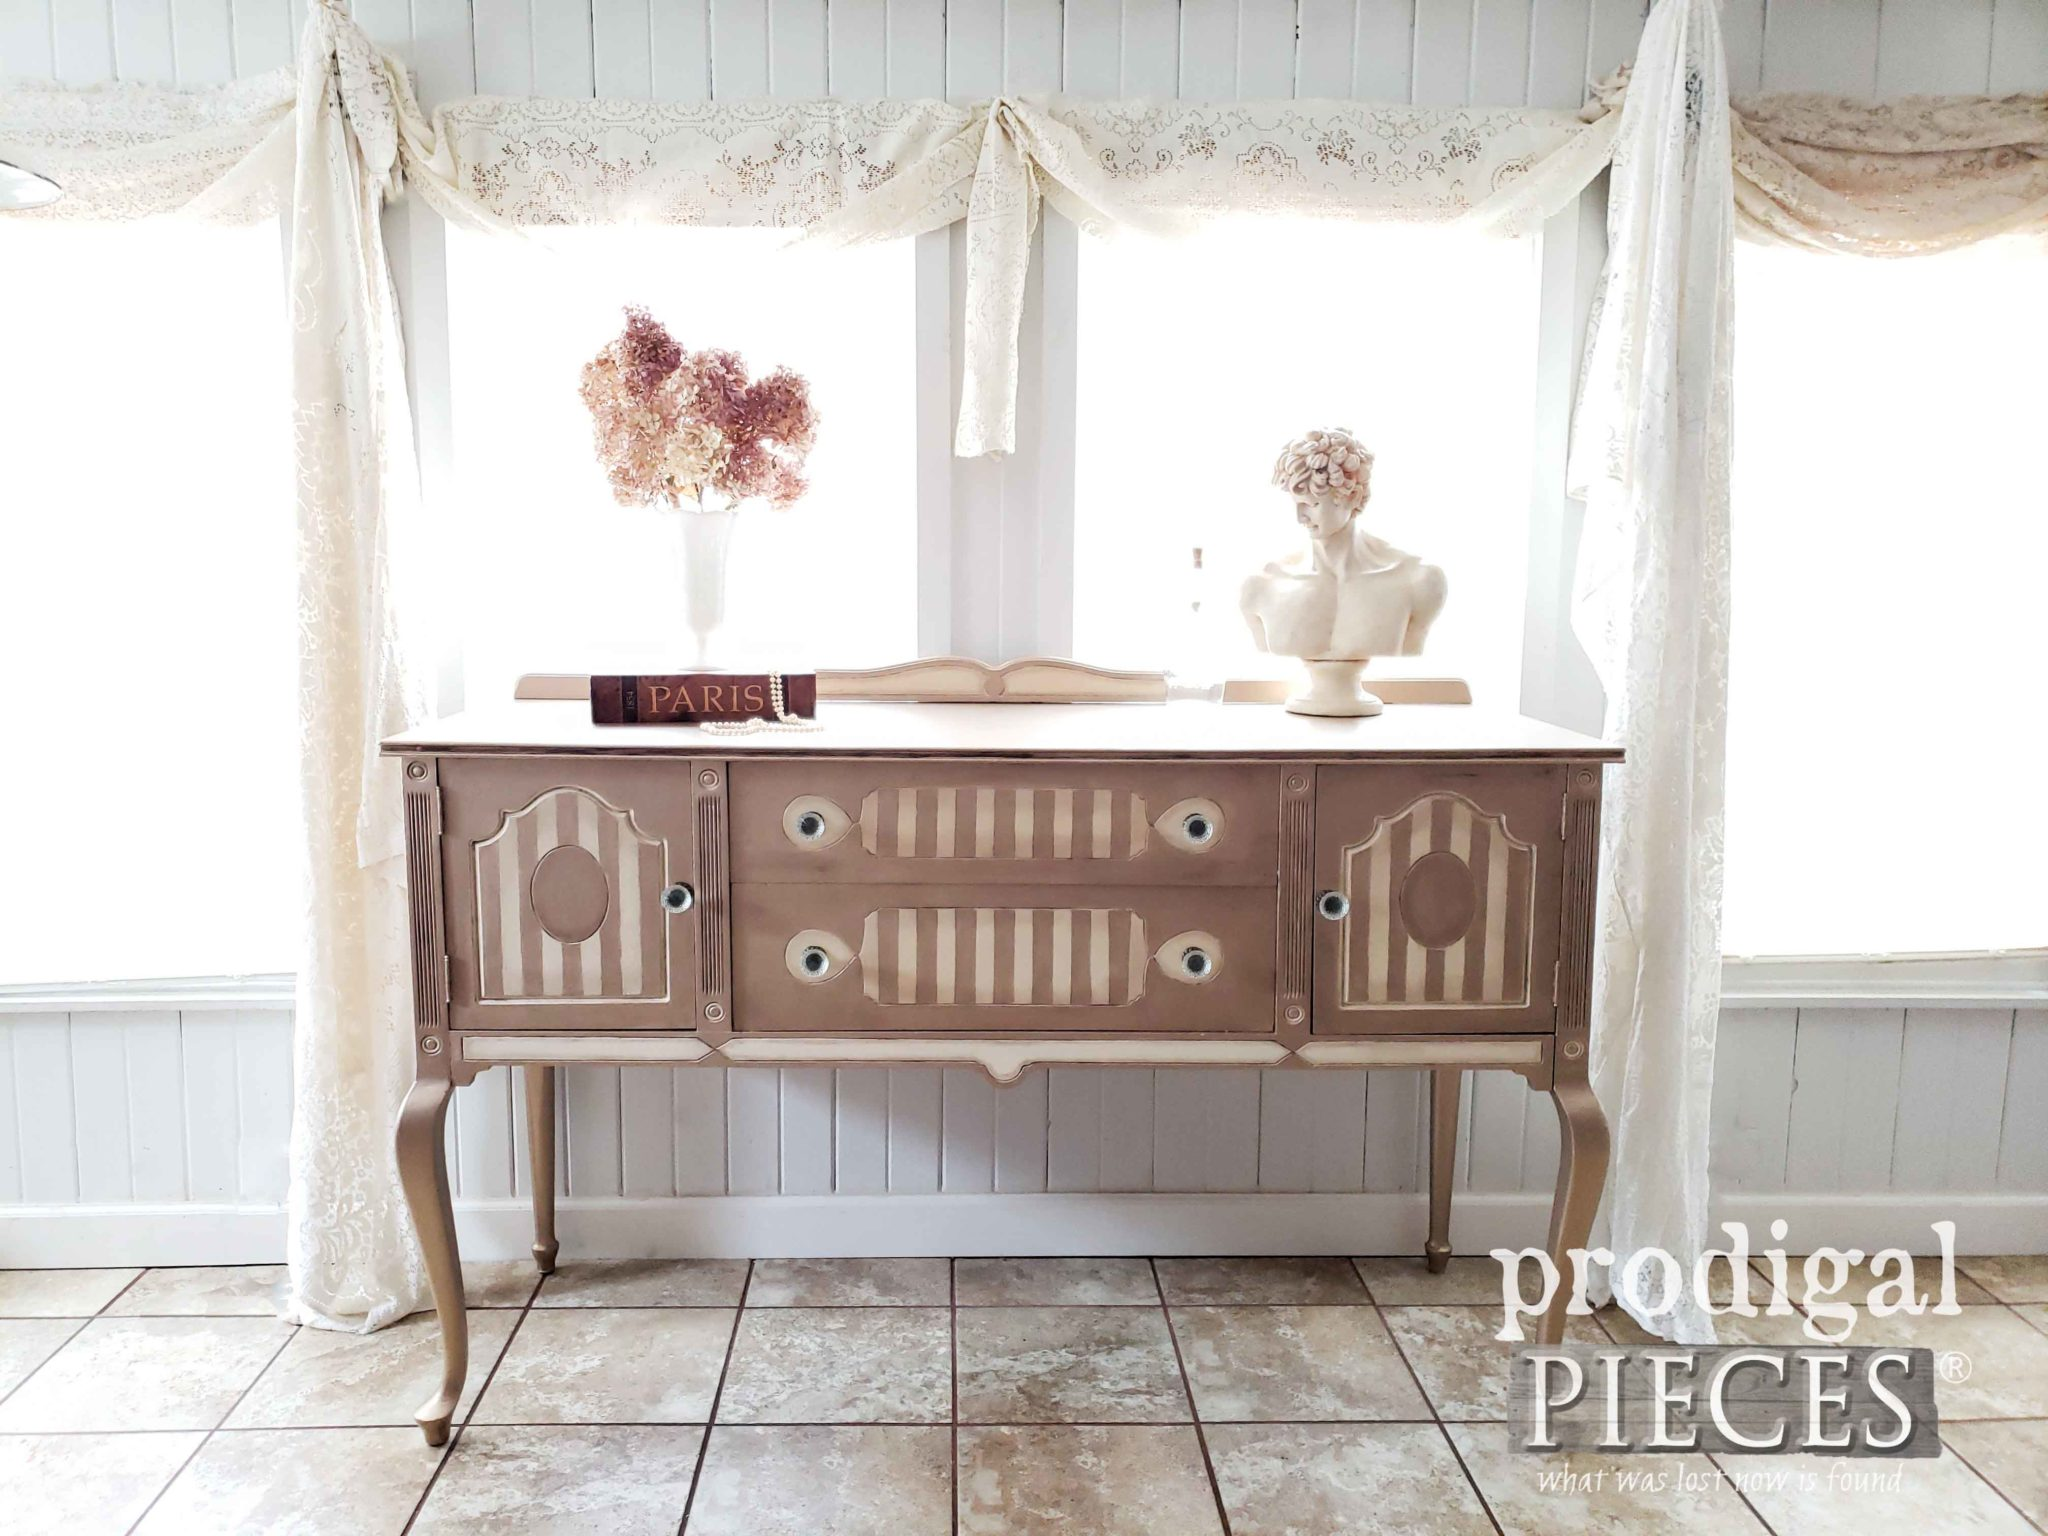 Get the DIY tutorial on how to use metallic paint of furniture like this antique buffet by Larissa at Prodigal Pieces | prodigalpieces.com #prodigalpieces #diy #furniture #antique #home #vintage #homedecor